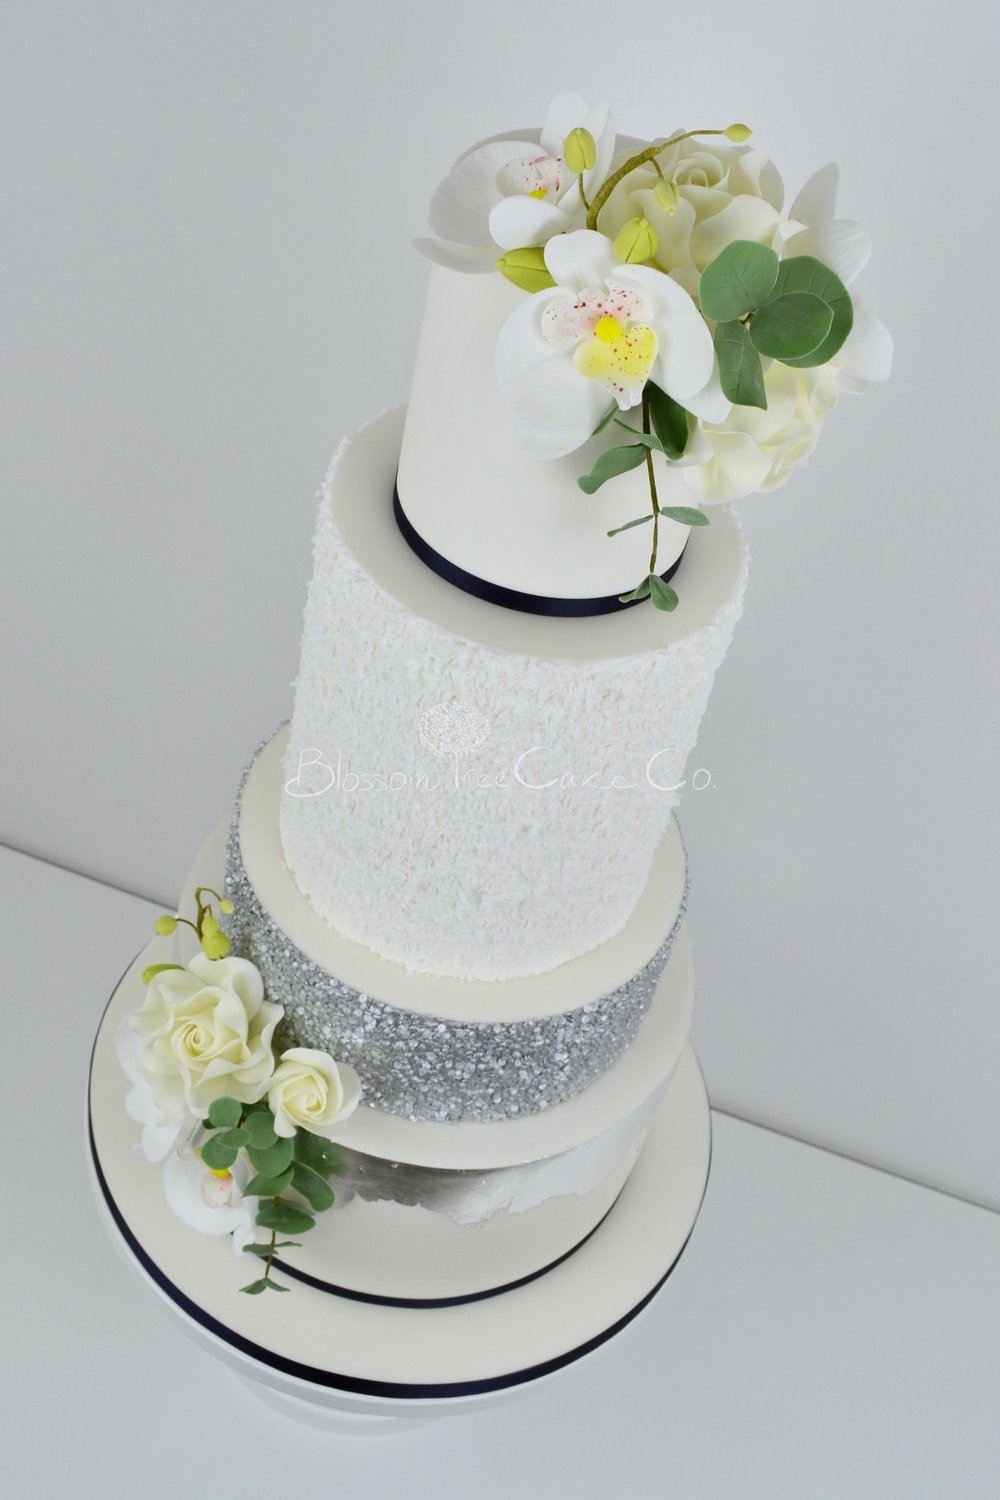 Silver Orchids wedding cake by Blossom Tree Cake Company Harrogate North Yorkshire